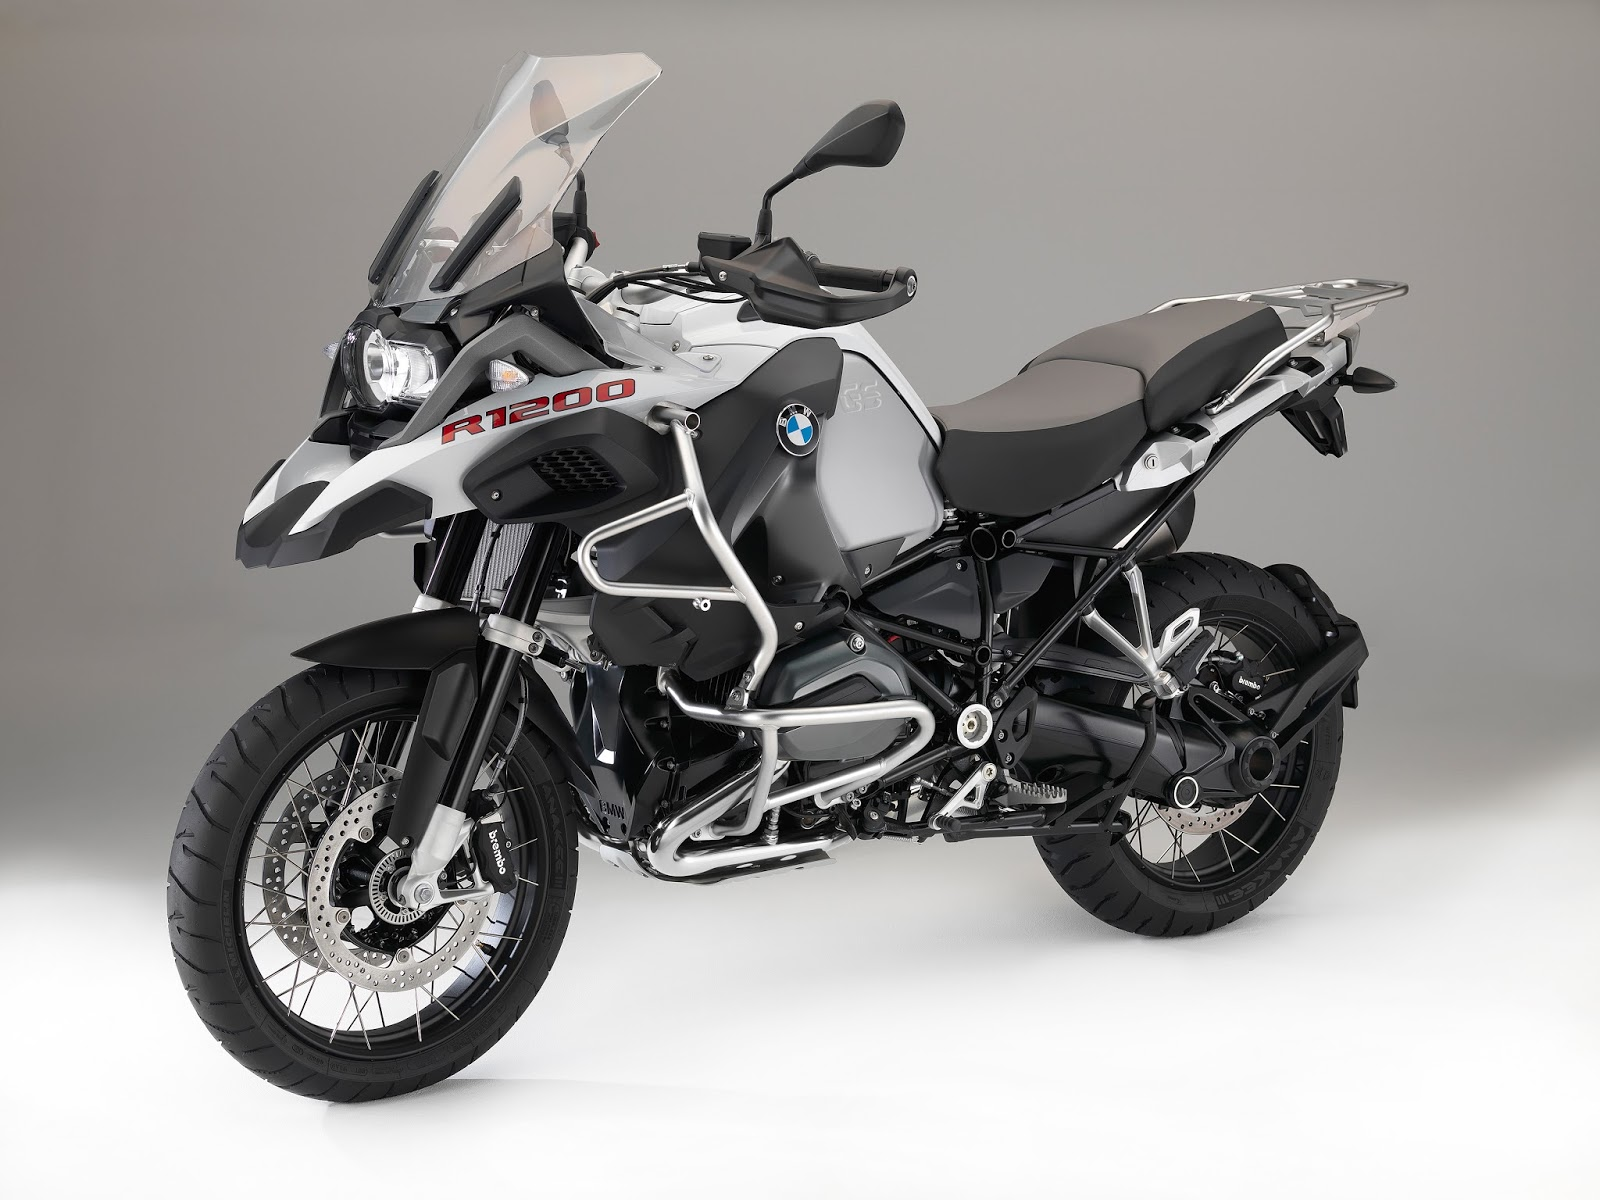 bmw gs les nouveaut s 2016 pour les gs. Black Bedroom Furniture Sets. Home Design Ideas